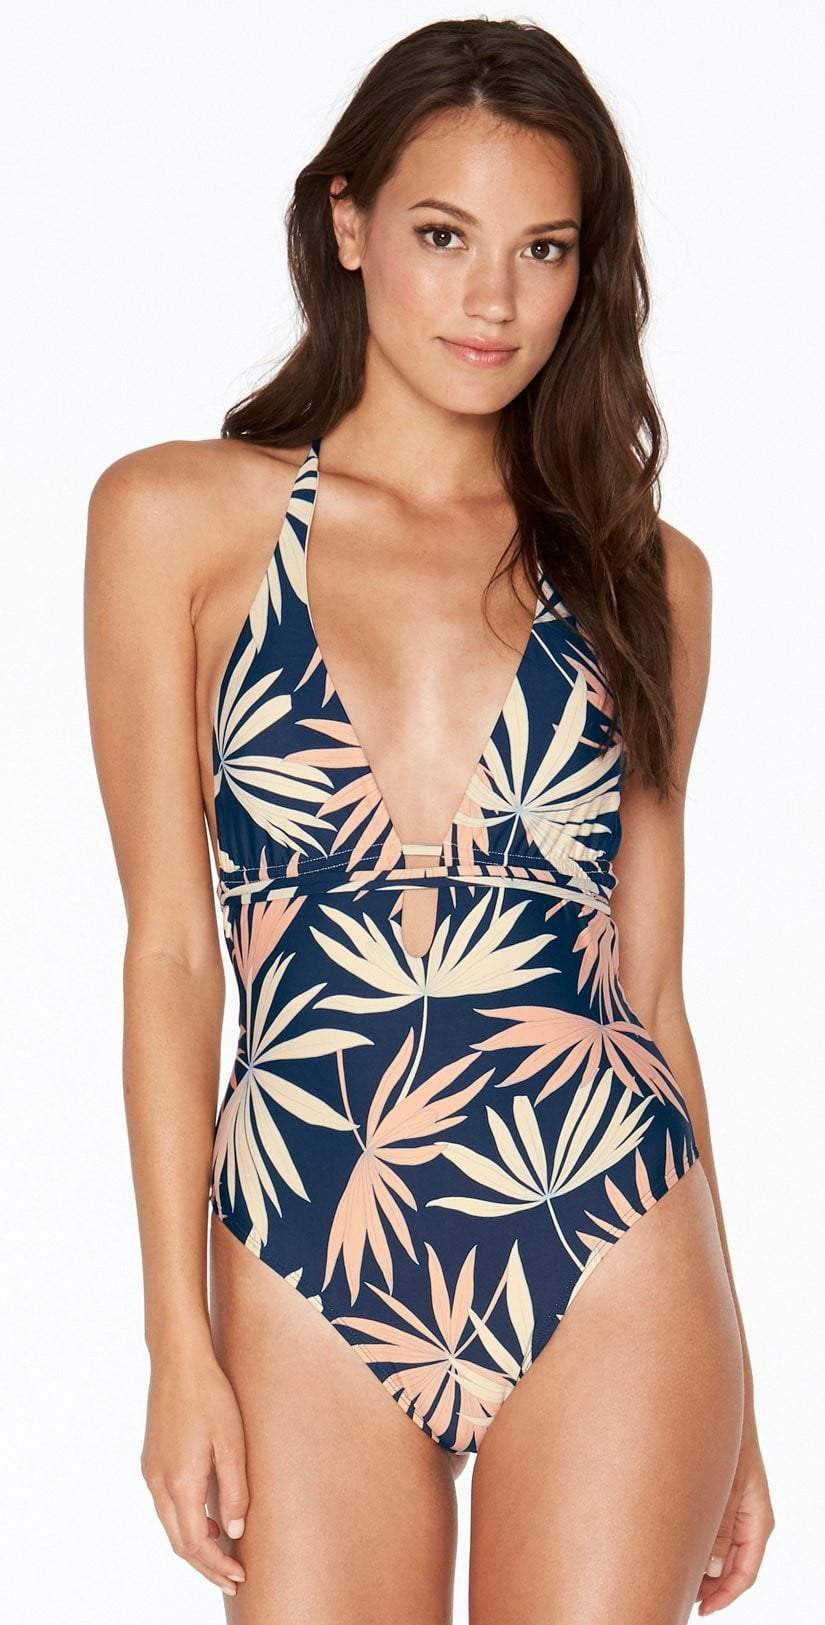 L Space Pamela One Piece in Polynesian Palm PNPMM18-NVY: